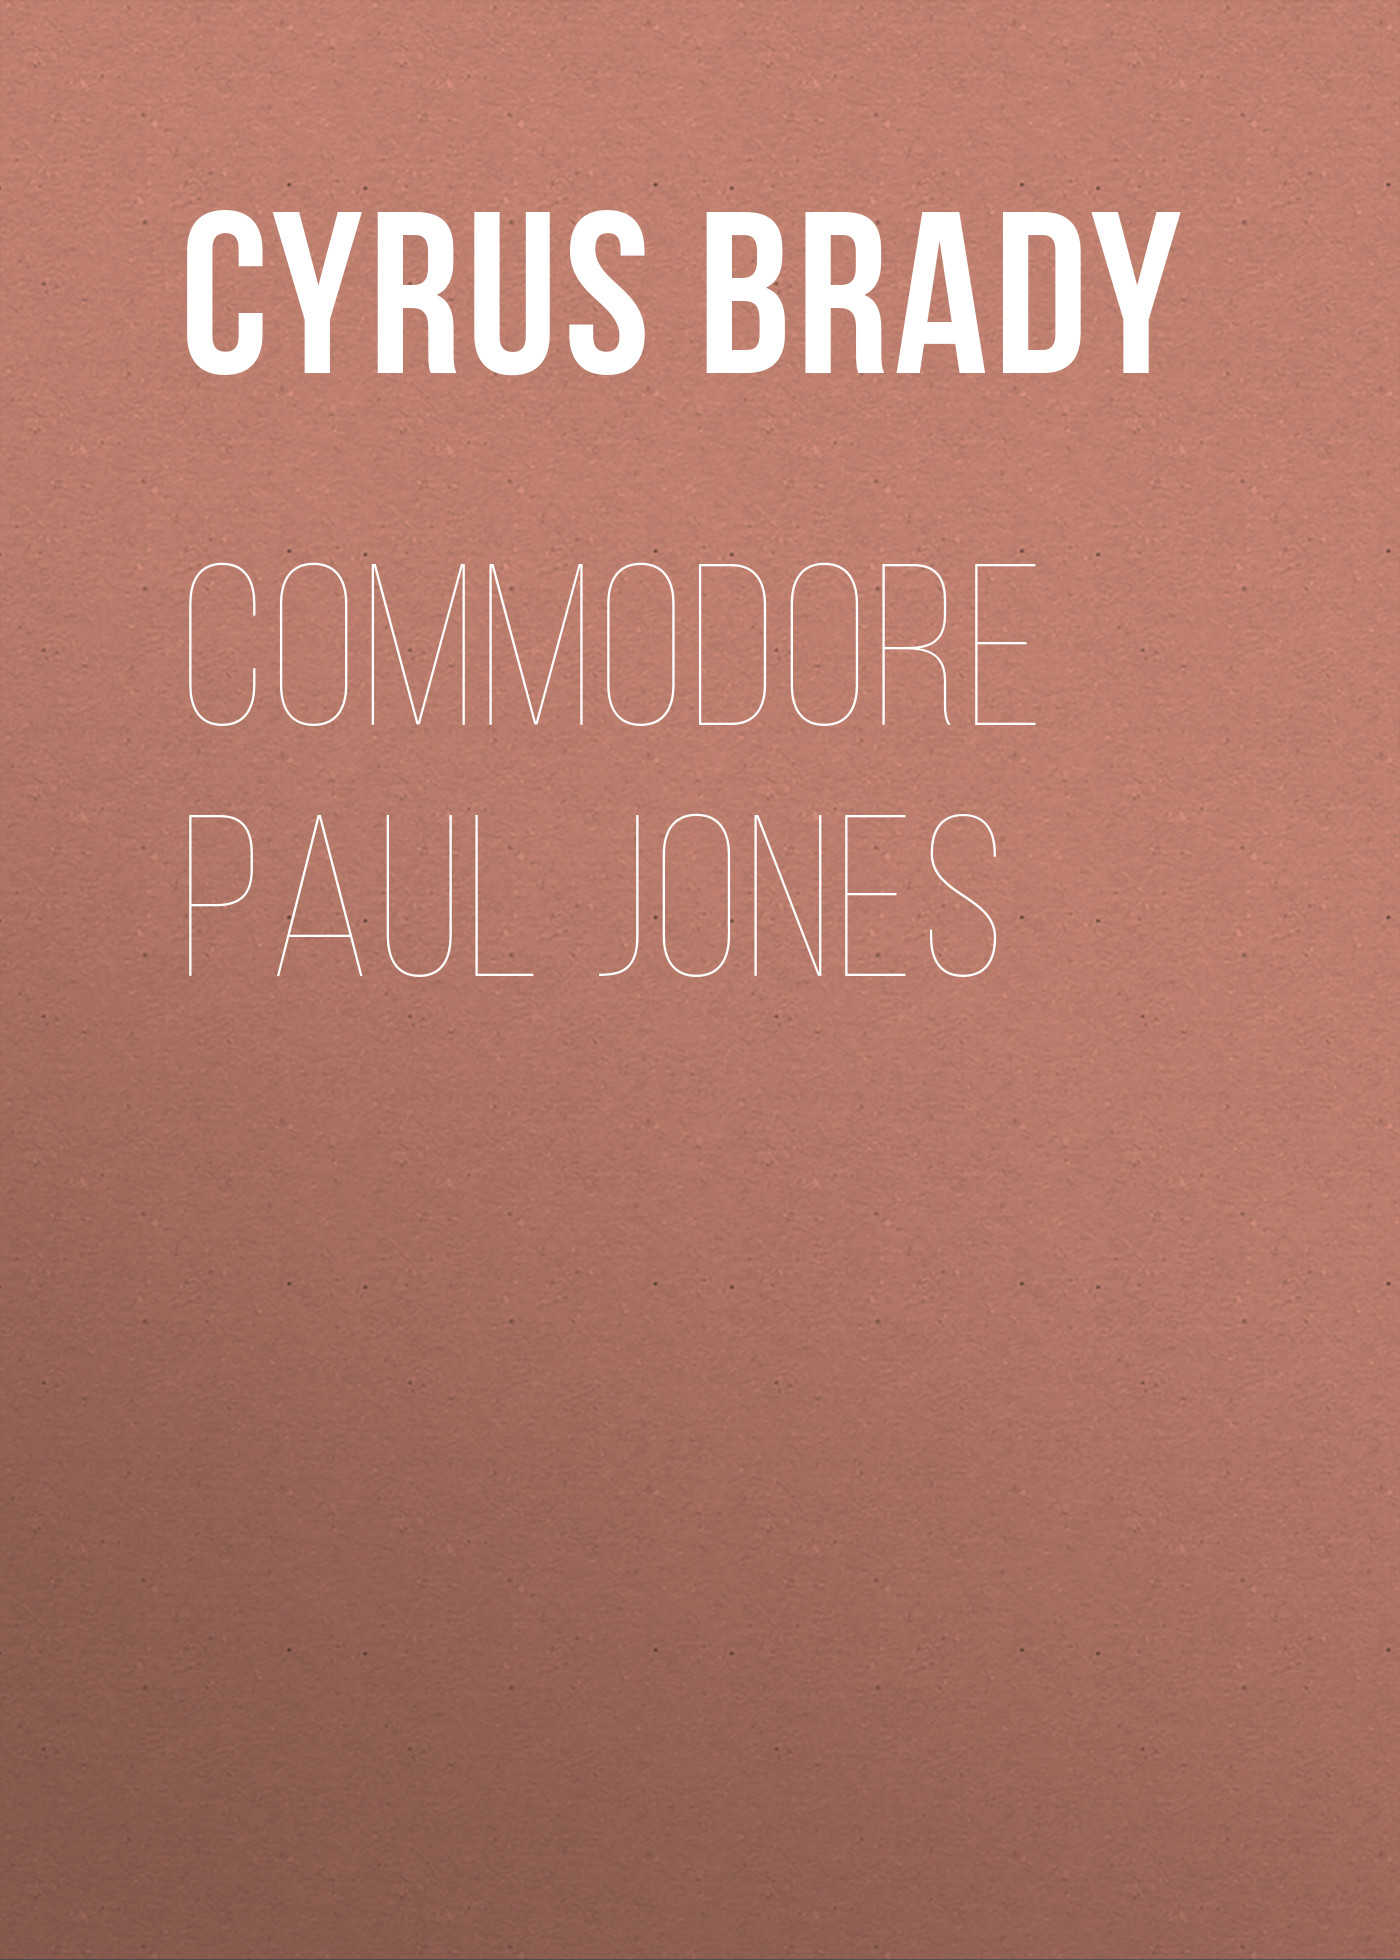 Brady Cyrus Townsend Commodore Paul Jones brady catalog number m 143 427